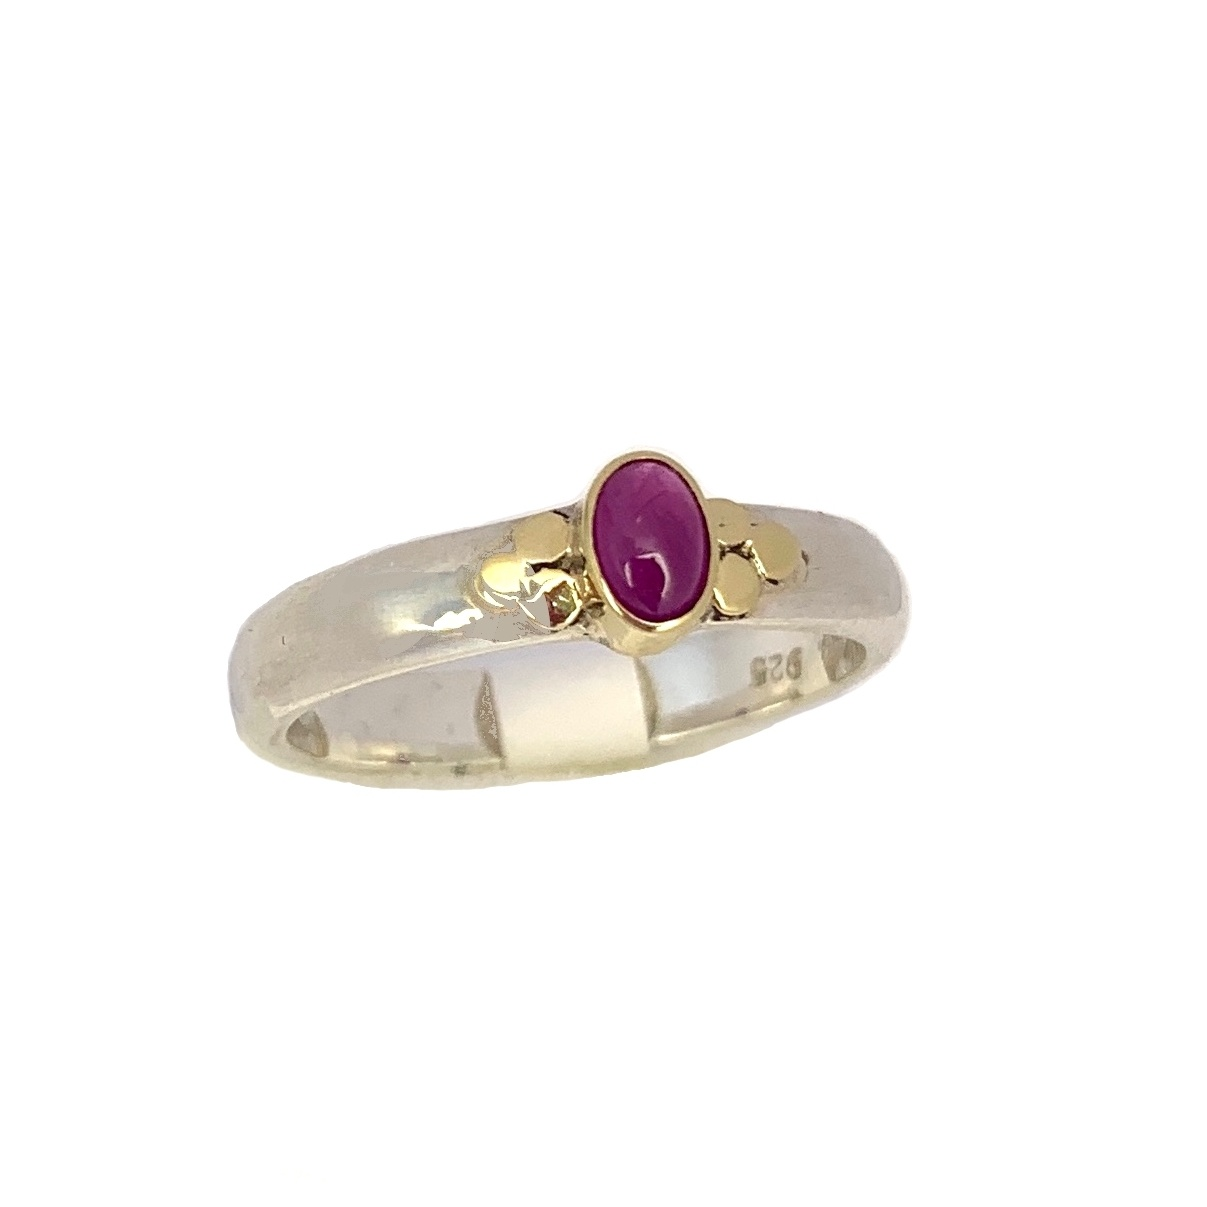 Kiliaan Jewelry Collectie Ring ruby